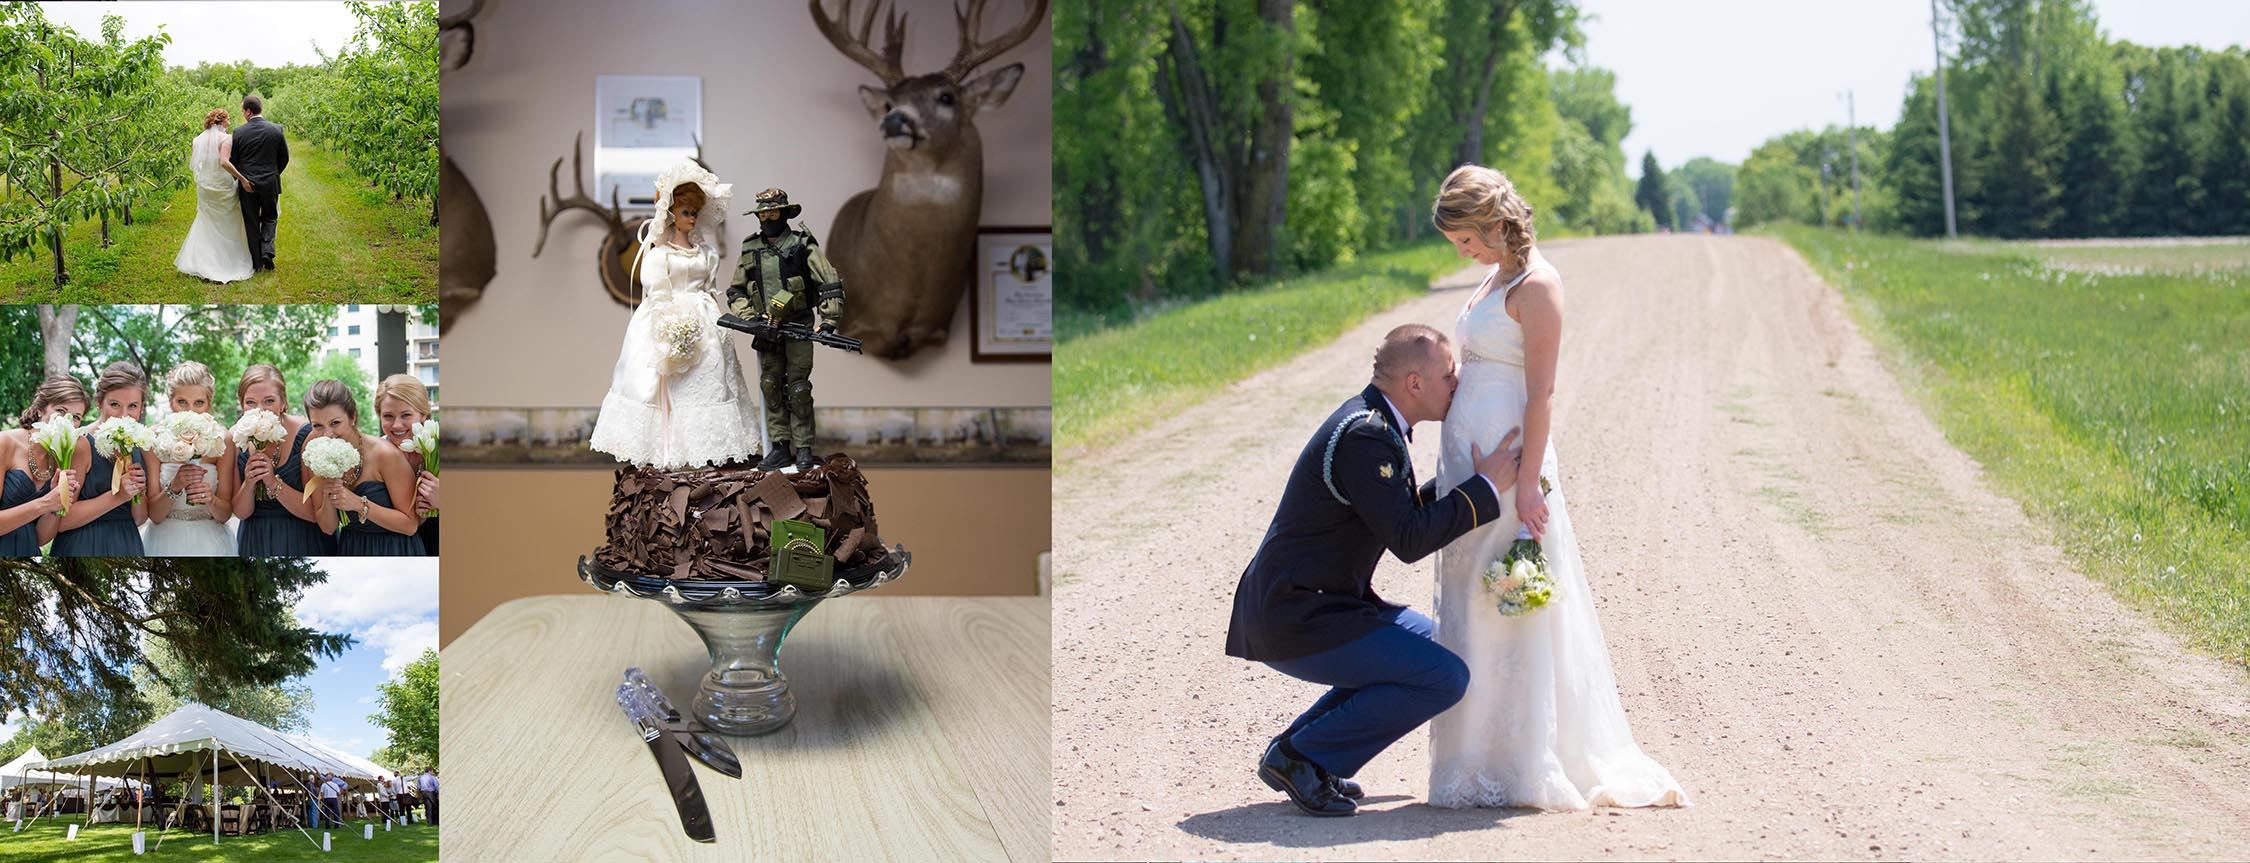 Best Military Wedding Photographers